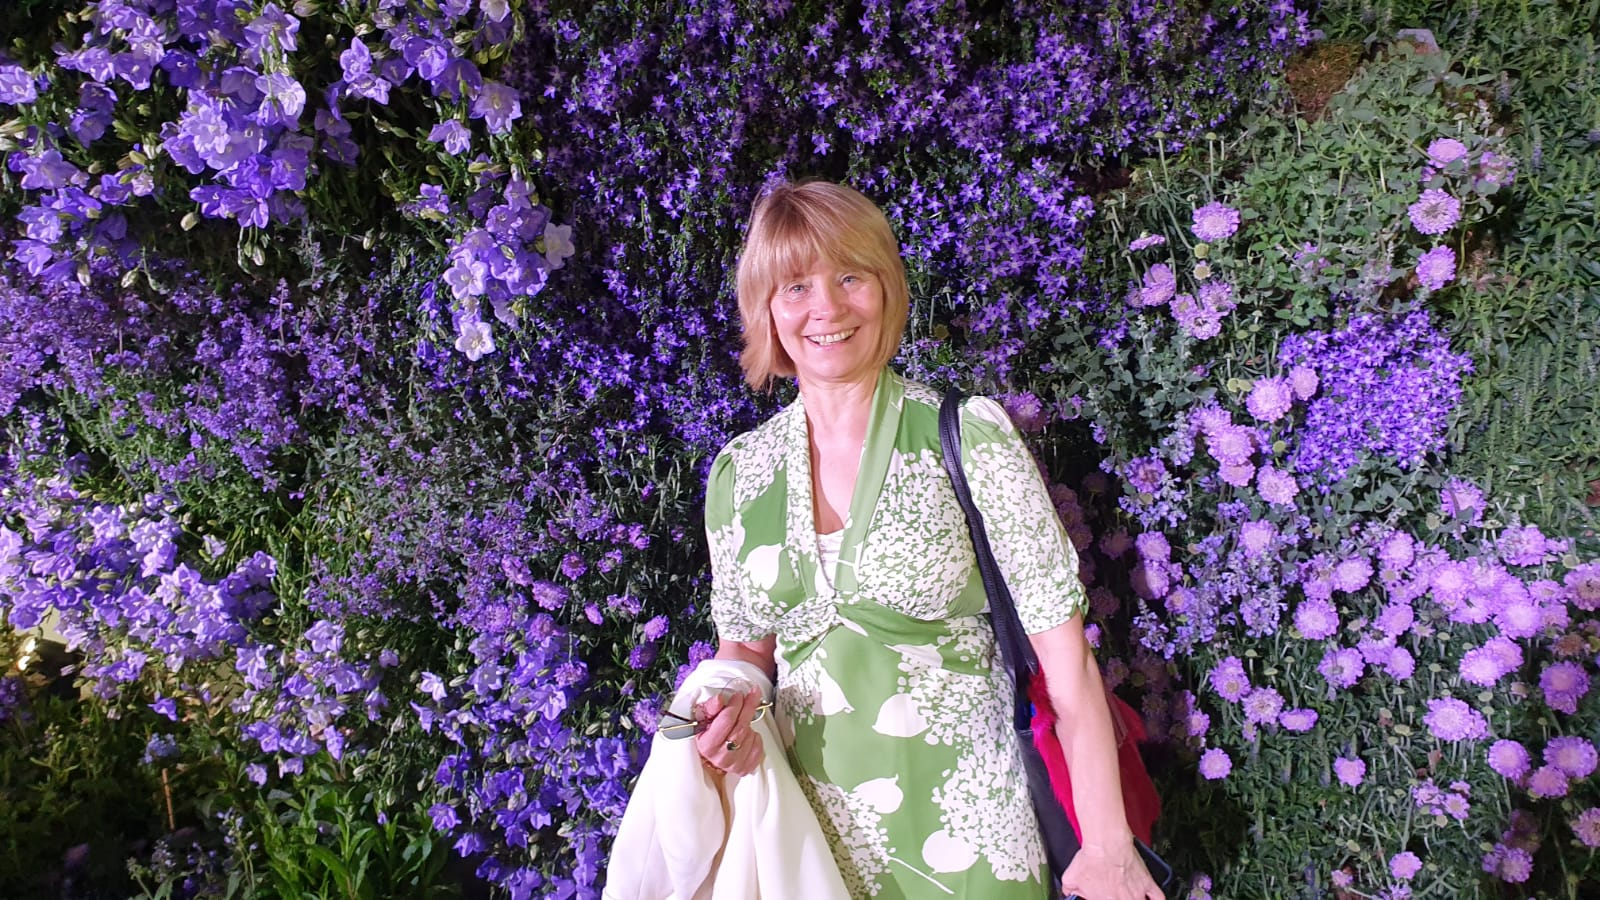 Wearing a green hydrangeas print dress with a backdrop of purple flowers at the Chelsea Flower Show